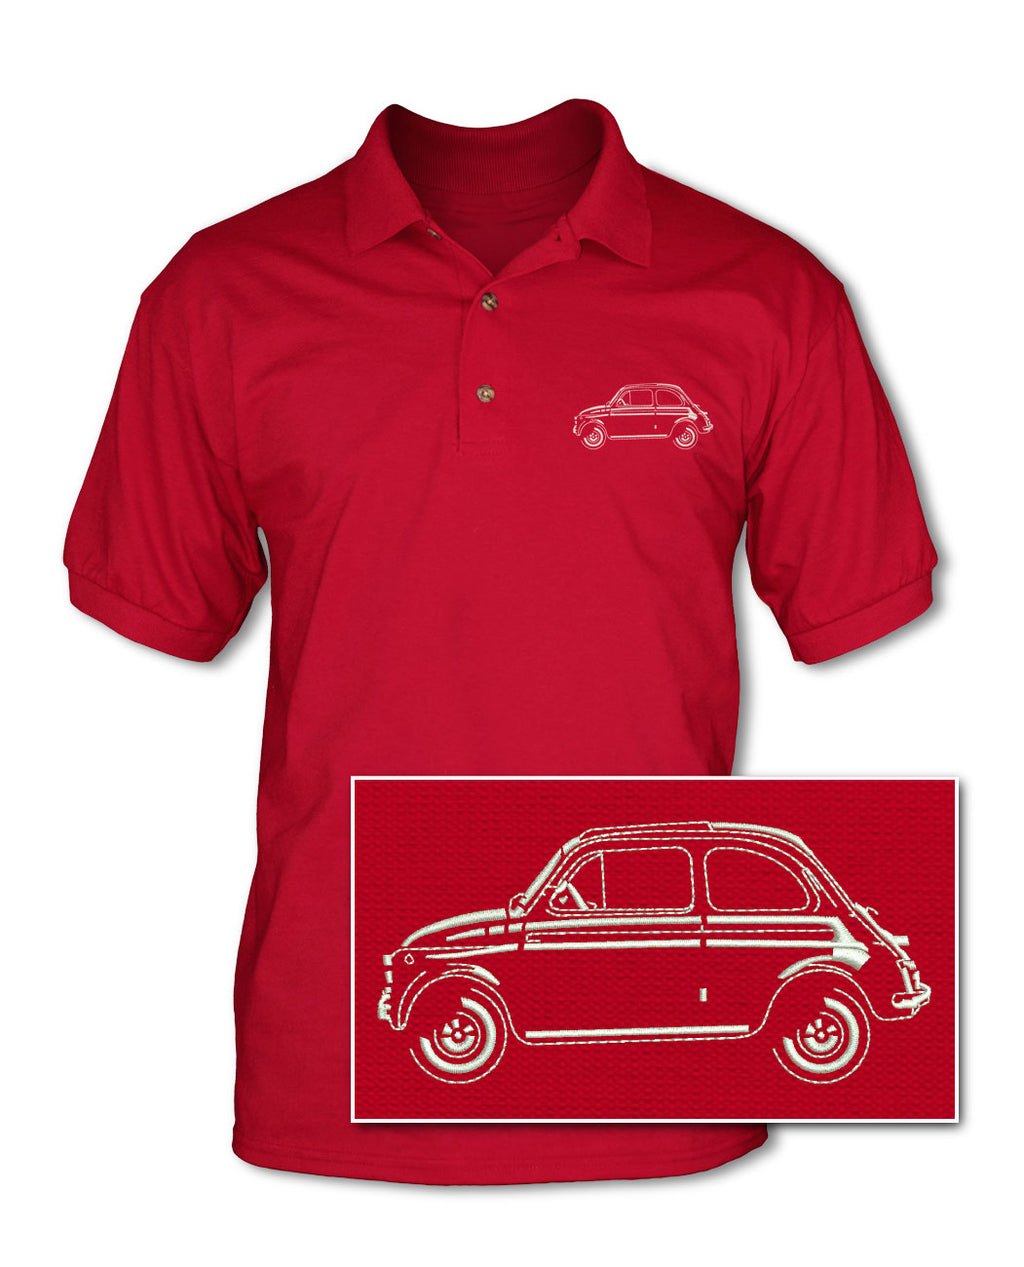 Fiat 500 Adult Pique Polo Shirt - Side View